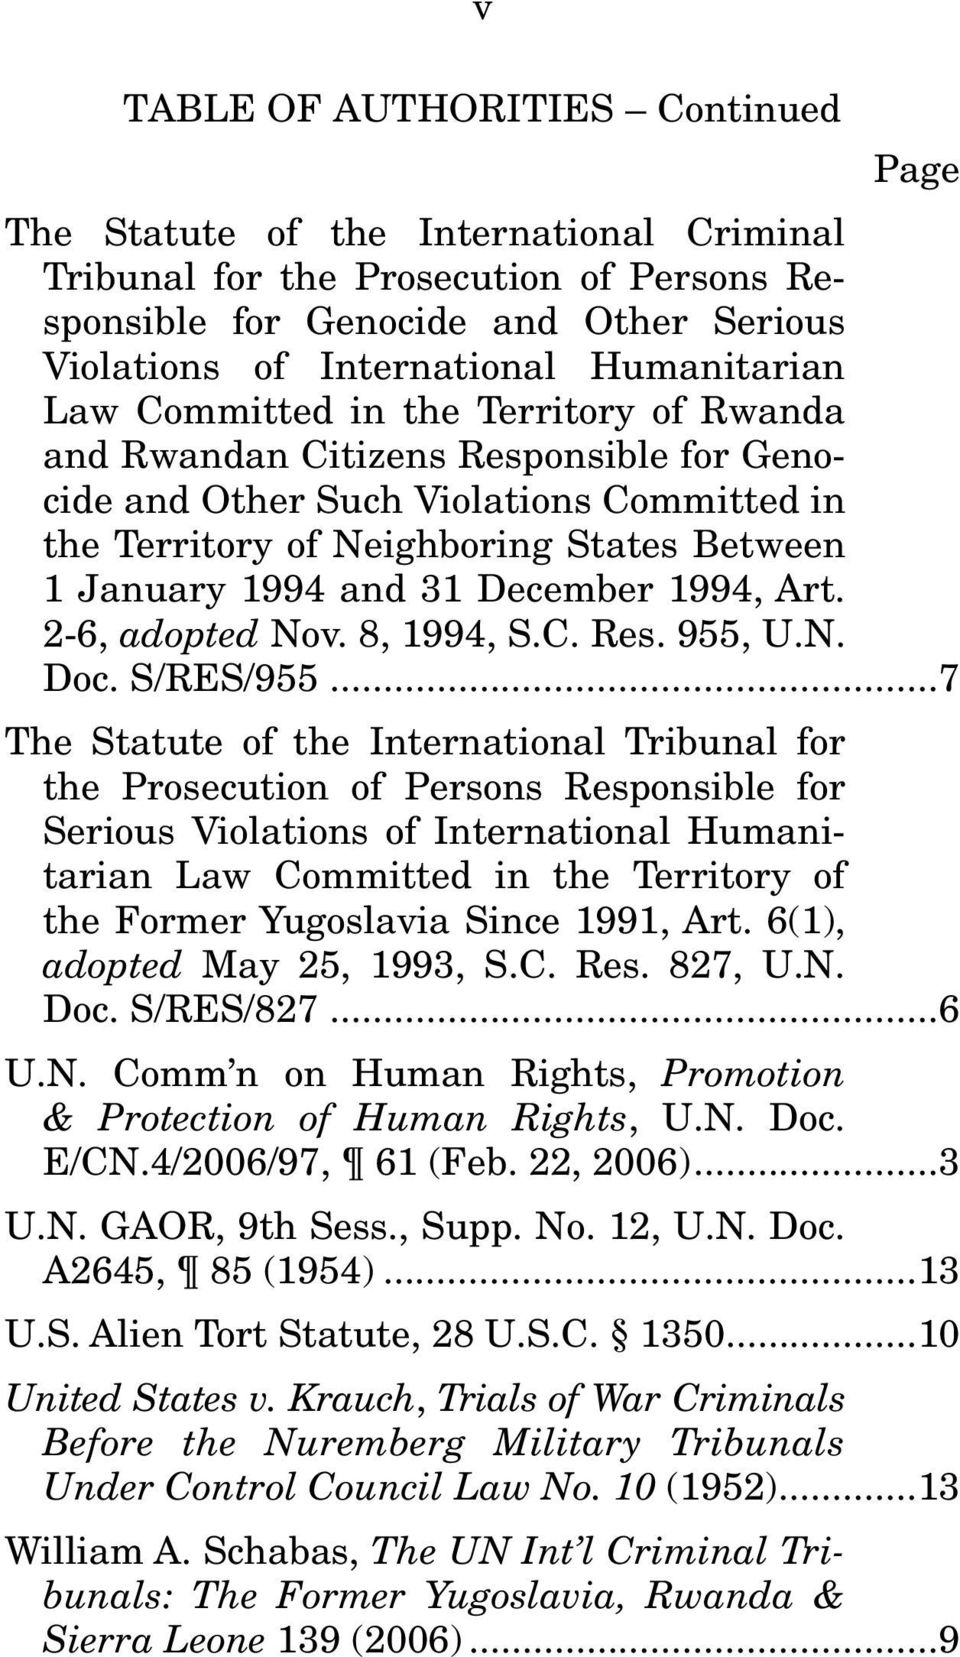 and 31 December 1994, Art. 2-6, adopted Nov. 8, 1994, S.C. Res. 955, U.N. Doc. S/RES/955.